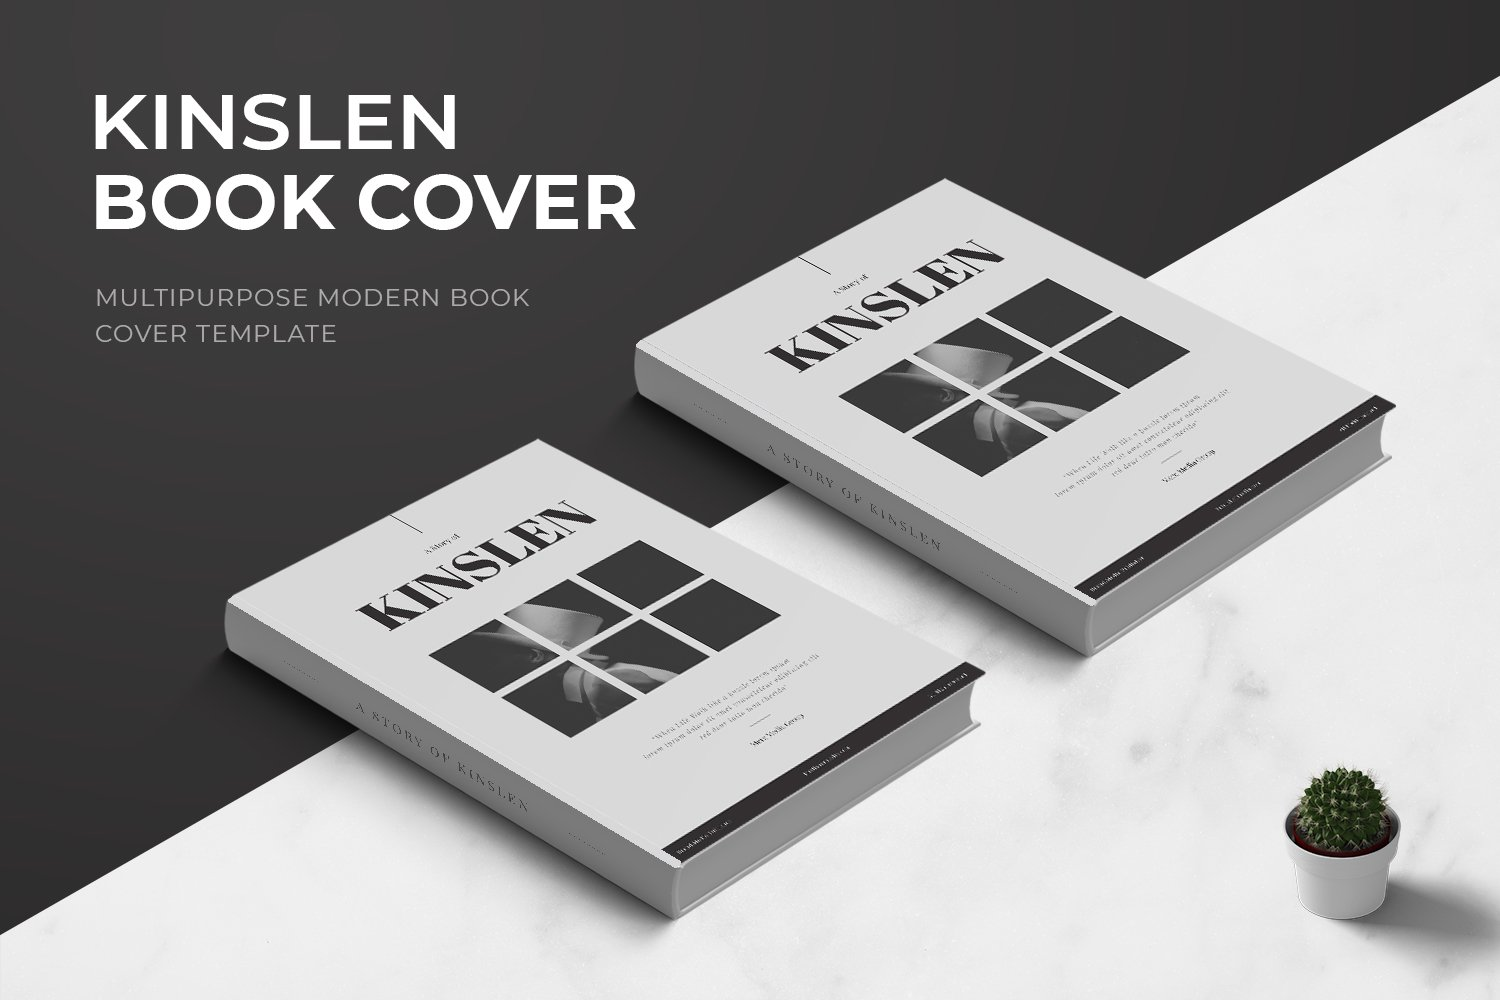 Kinslen Book Cover example image 1